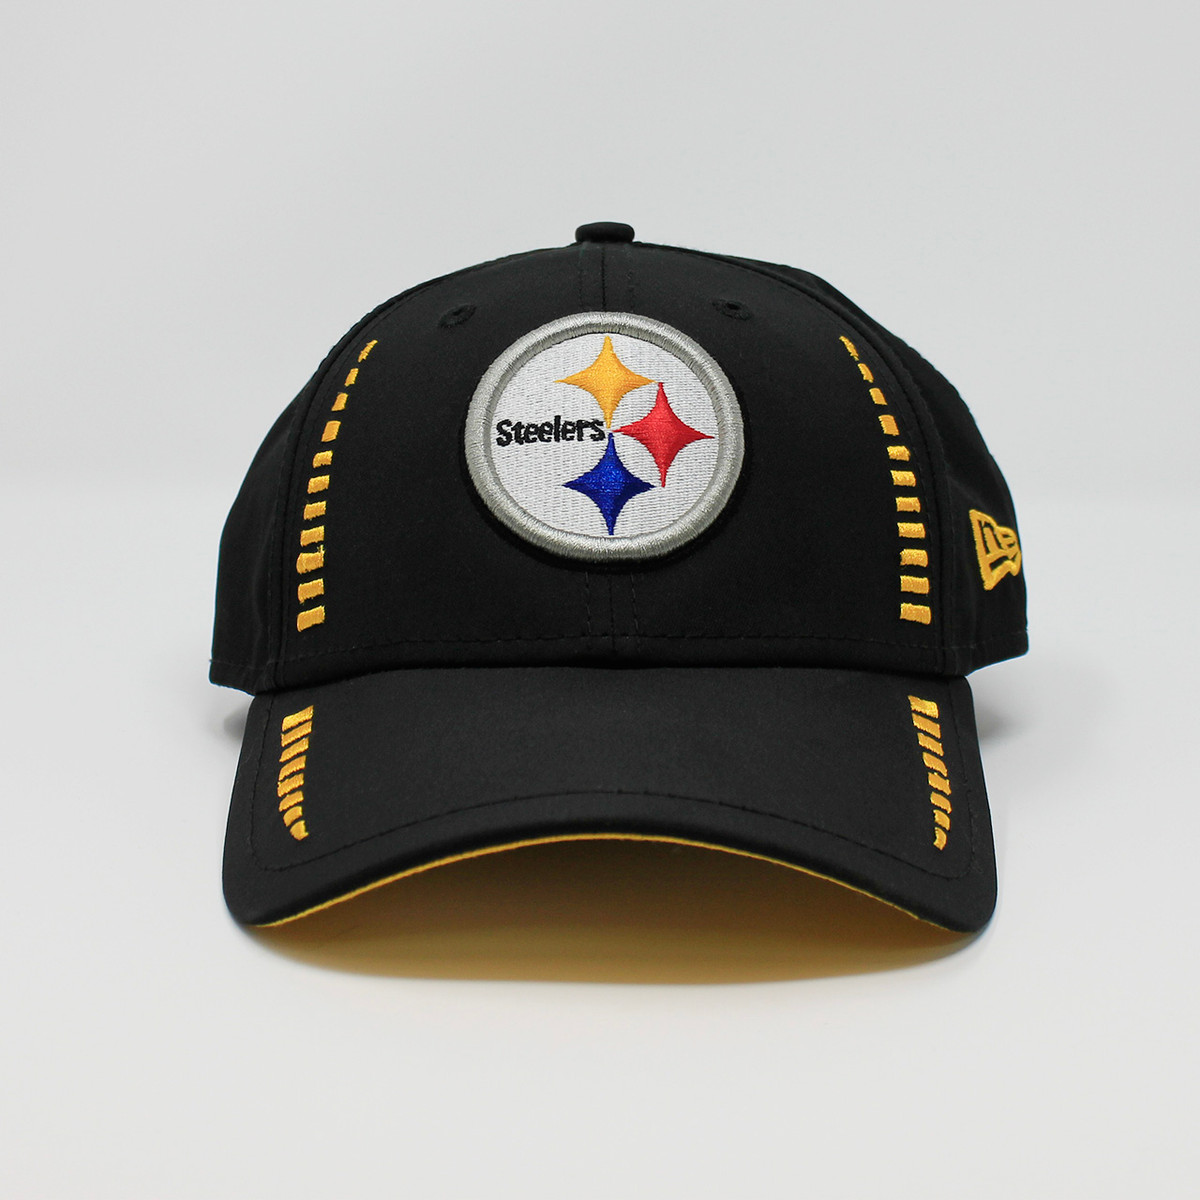 New Era Steelers 940Speed Adjustable Hat